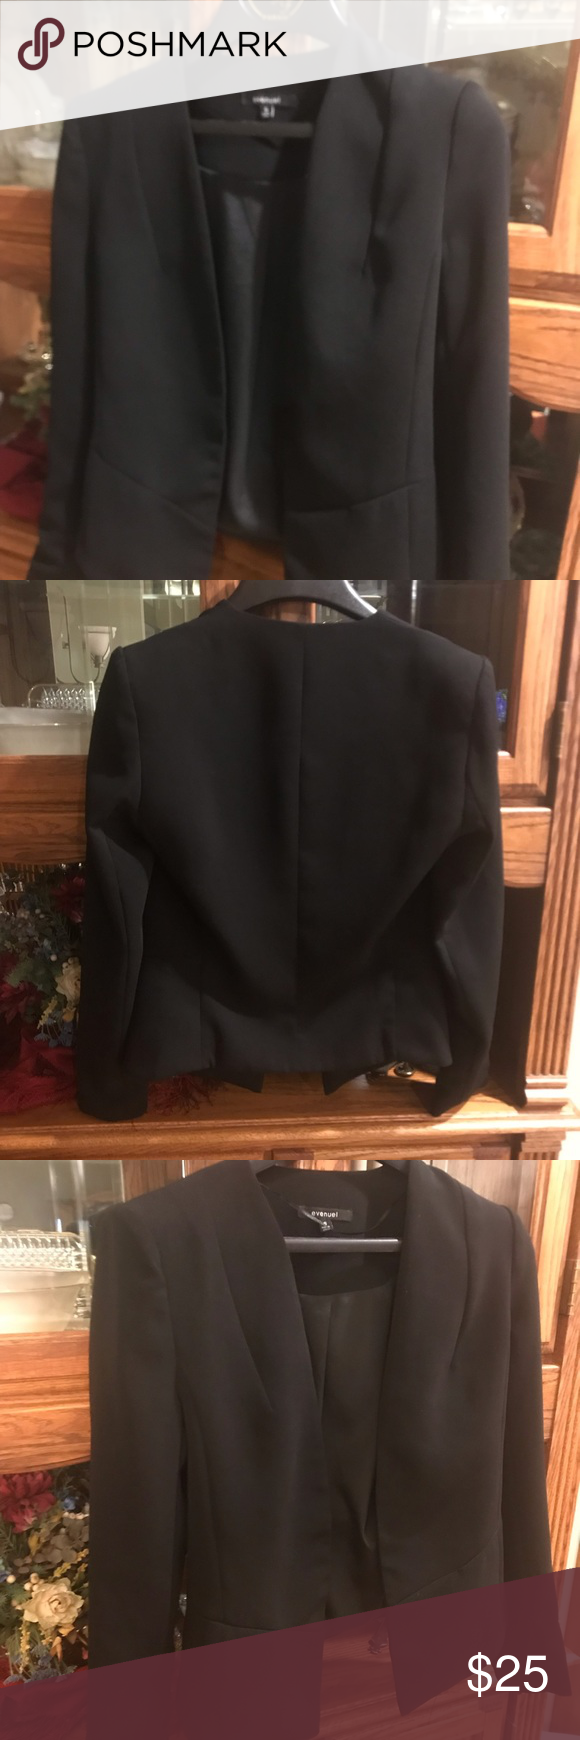 Chic Black Jacket Size Small Dressy Black Jacket Really Well Made And Bought From Higher End Boutique Wor Chic Black Dress Black Dress Jacket Jacket Dress [ 1740 x 580 Pixel ]